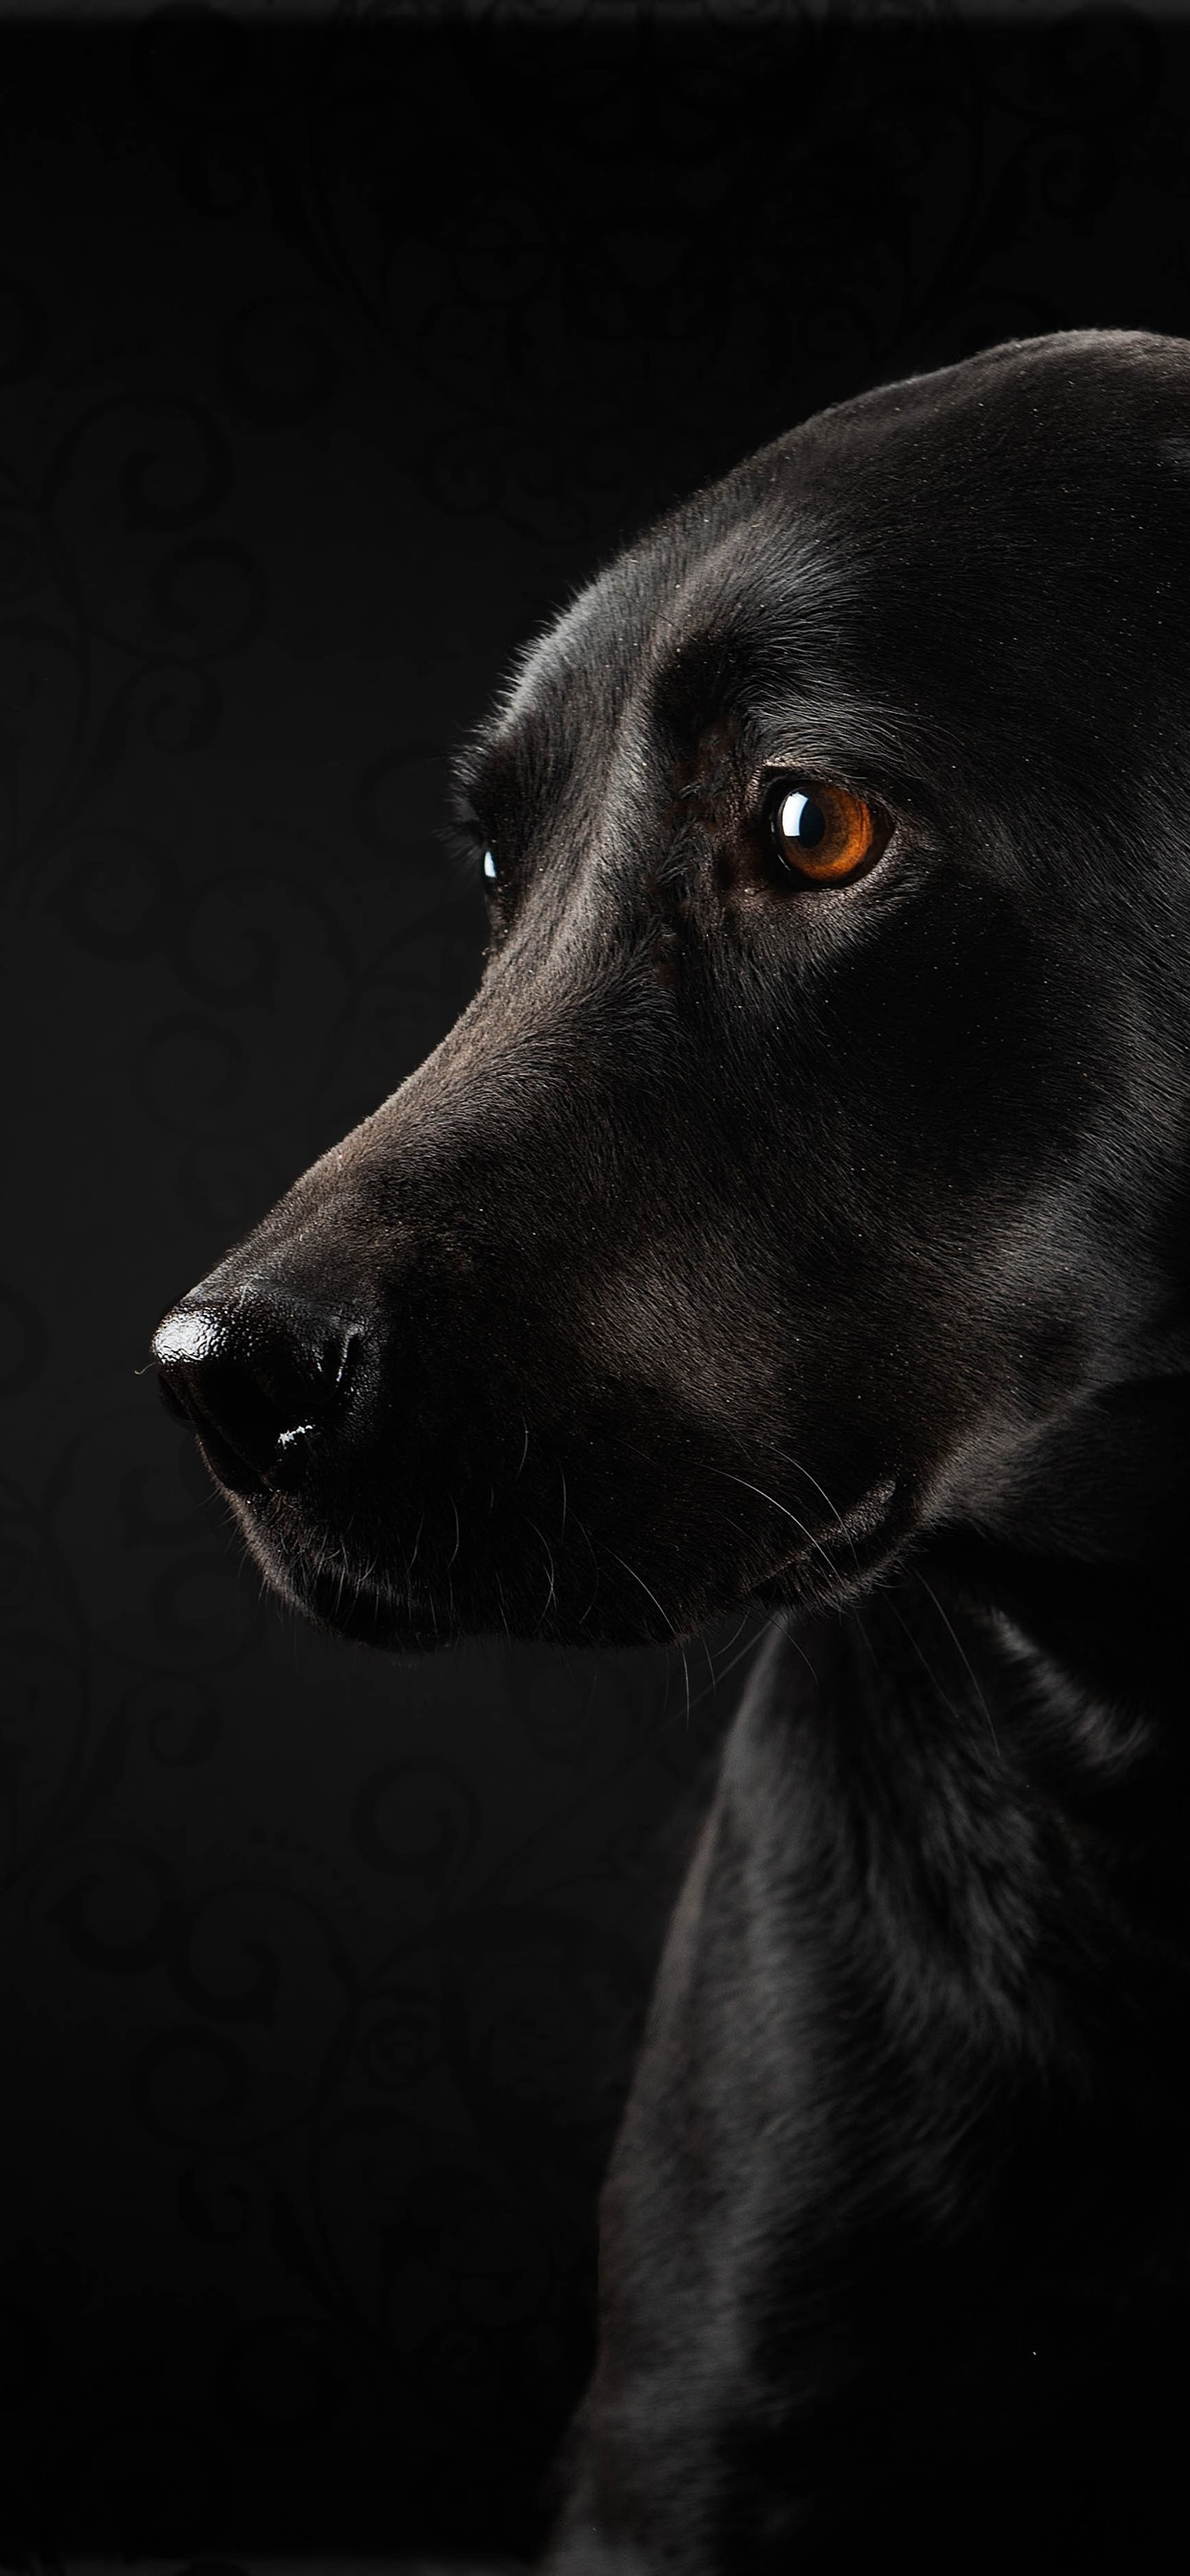 Black Dog And Black Background Look 1242x2688 Iphone 11 Pro Xs Max Wallpaper Background Picture Image